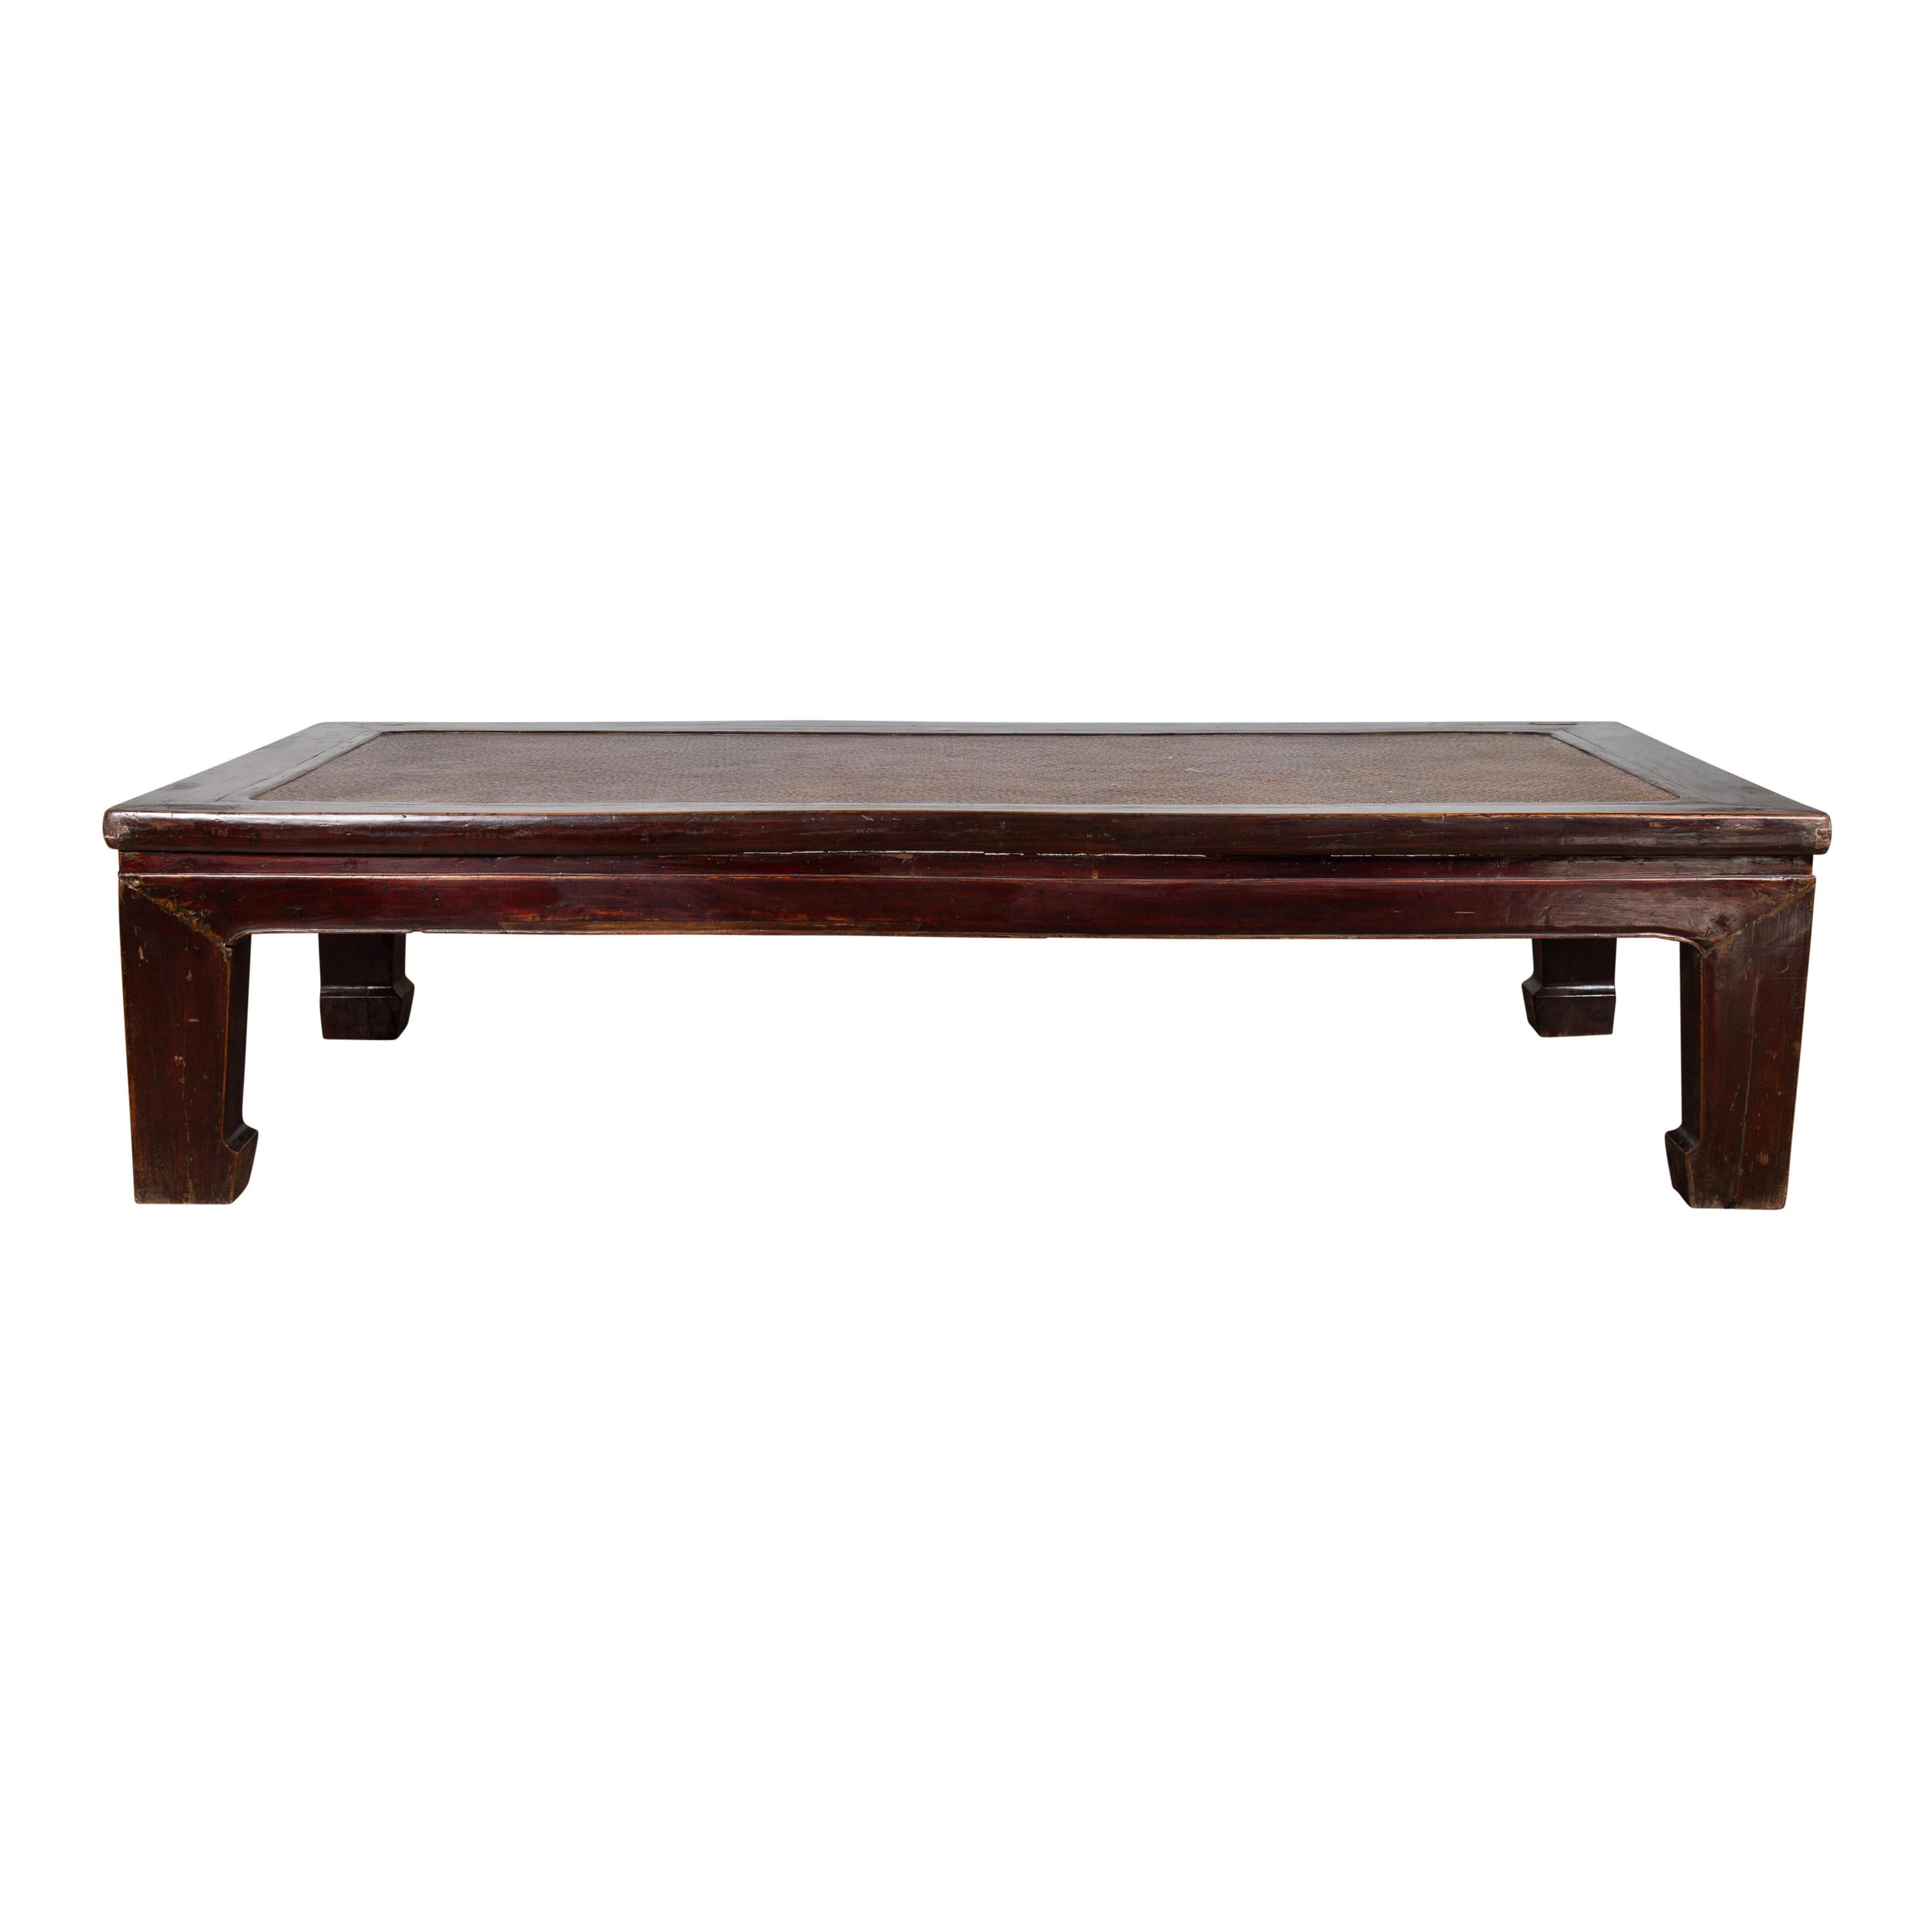 Antique Chinese Wooden Coffee Table with Dark Patina and Woven Rattan Top